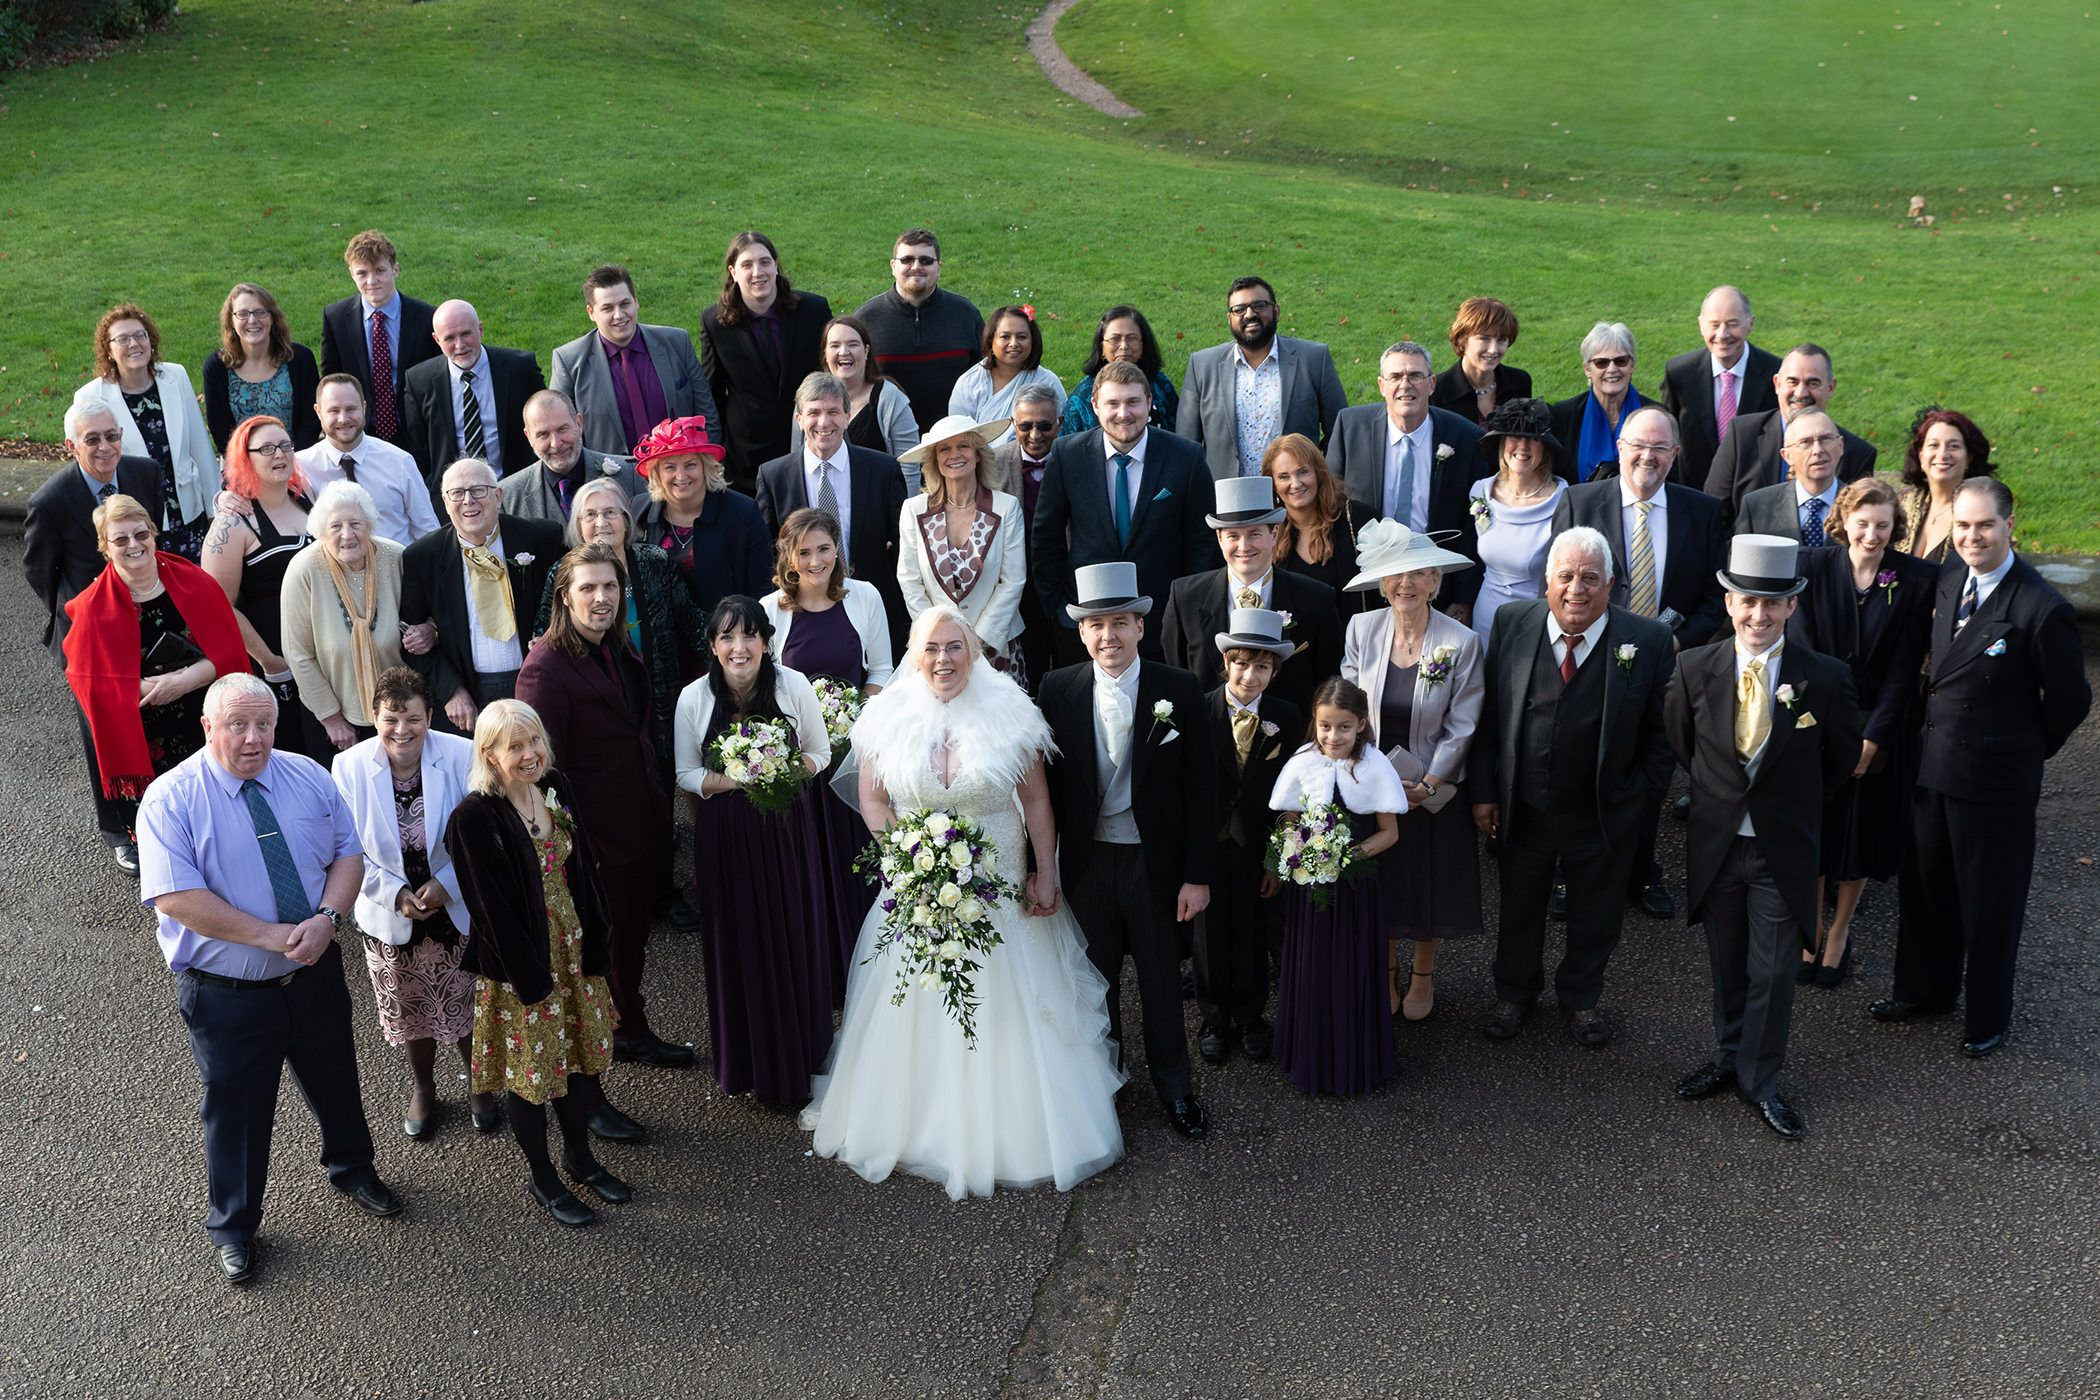 the wedding group photo